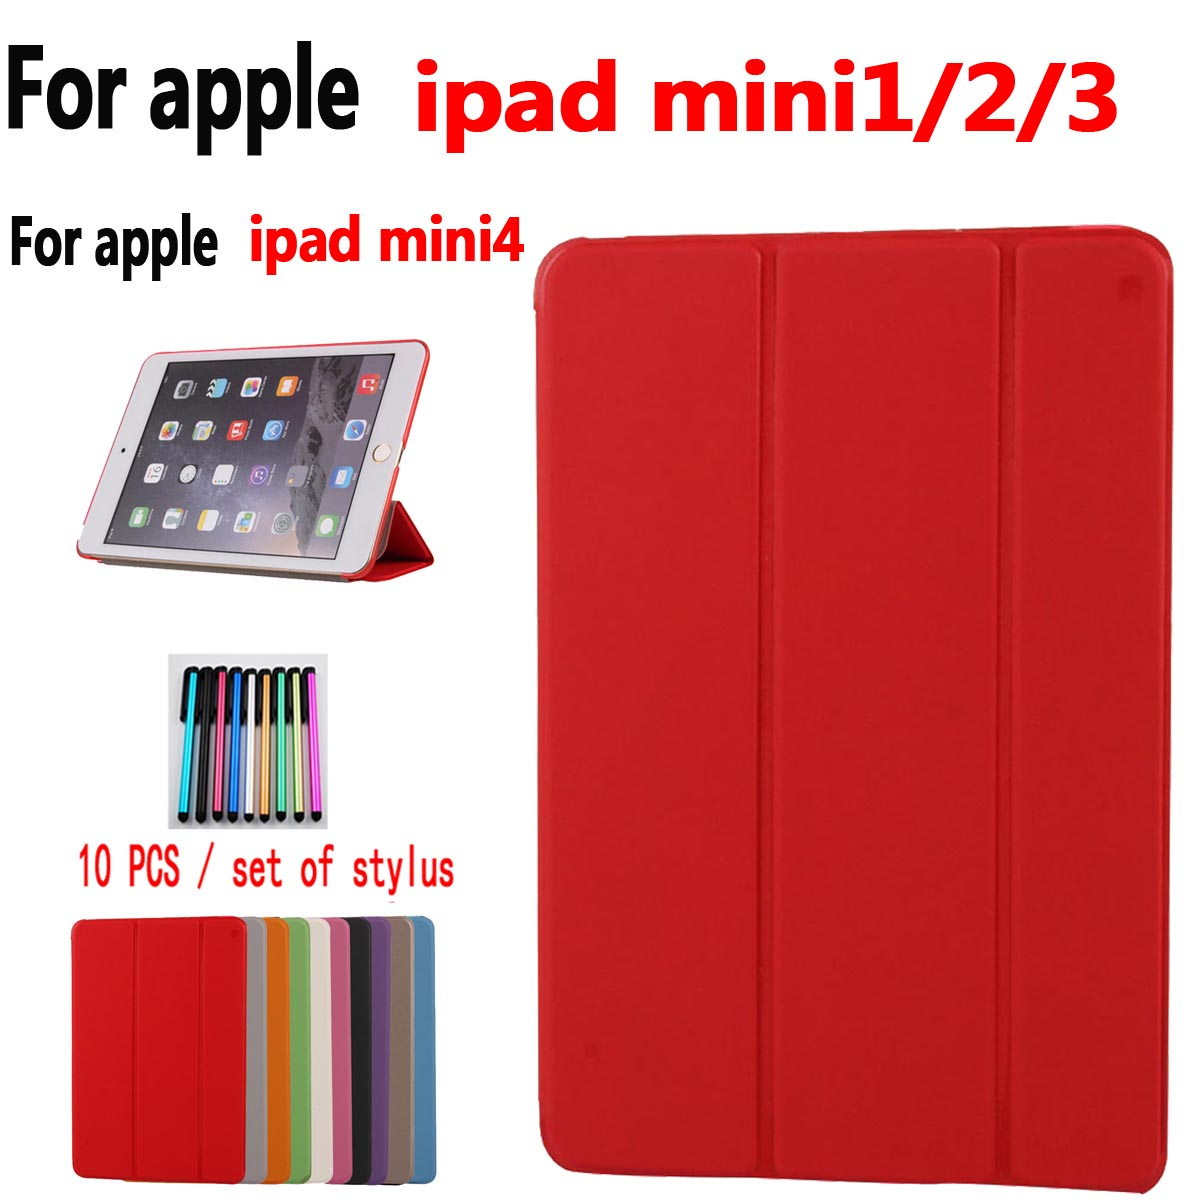 For Apple iPad Mini <font><b>1</b></font> 2 3 <font><b>4</b></font> case cover Smart Flip Stand PU Holster Display Wake/Sleep Function With <font><b>10</b></font> stylus image